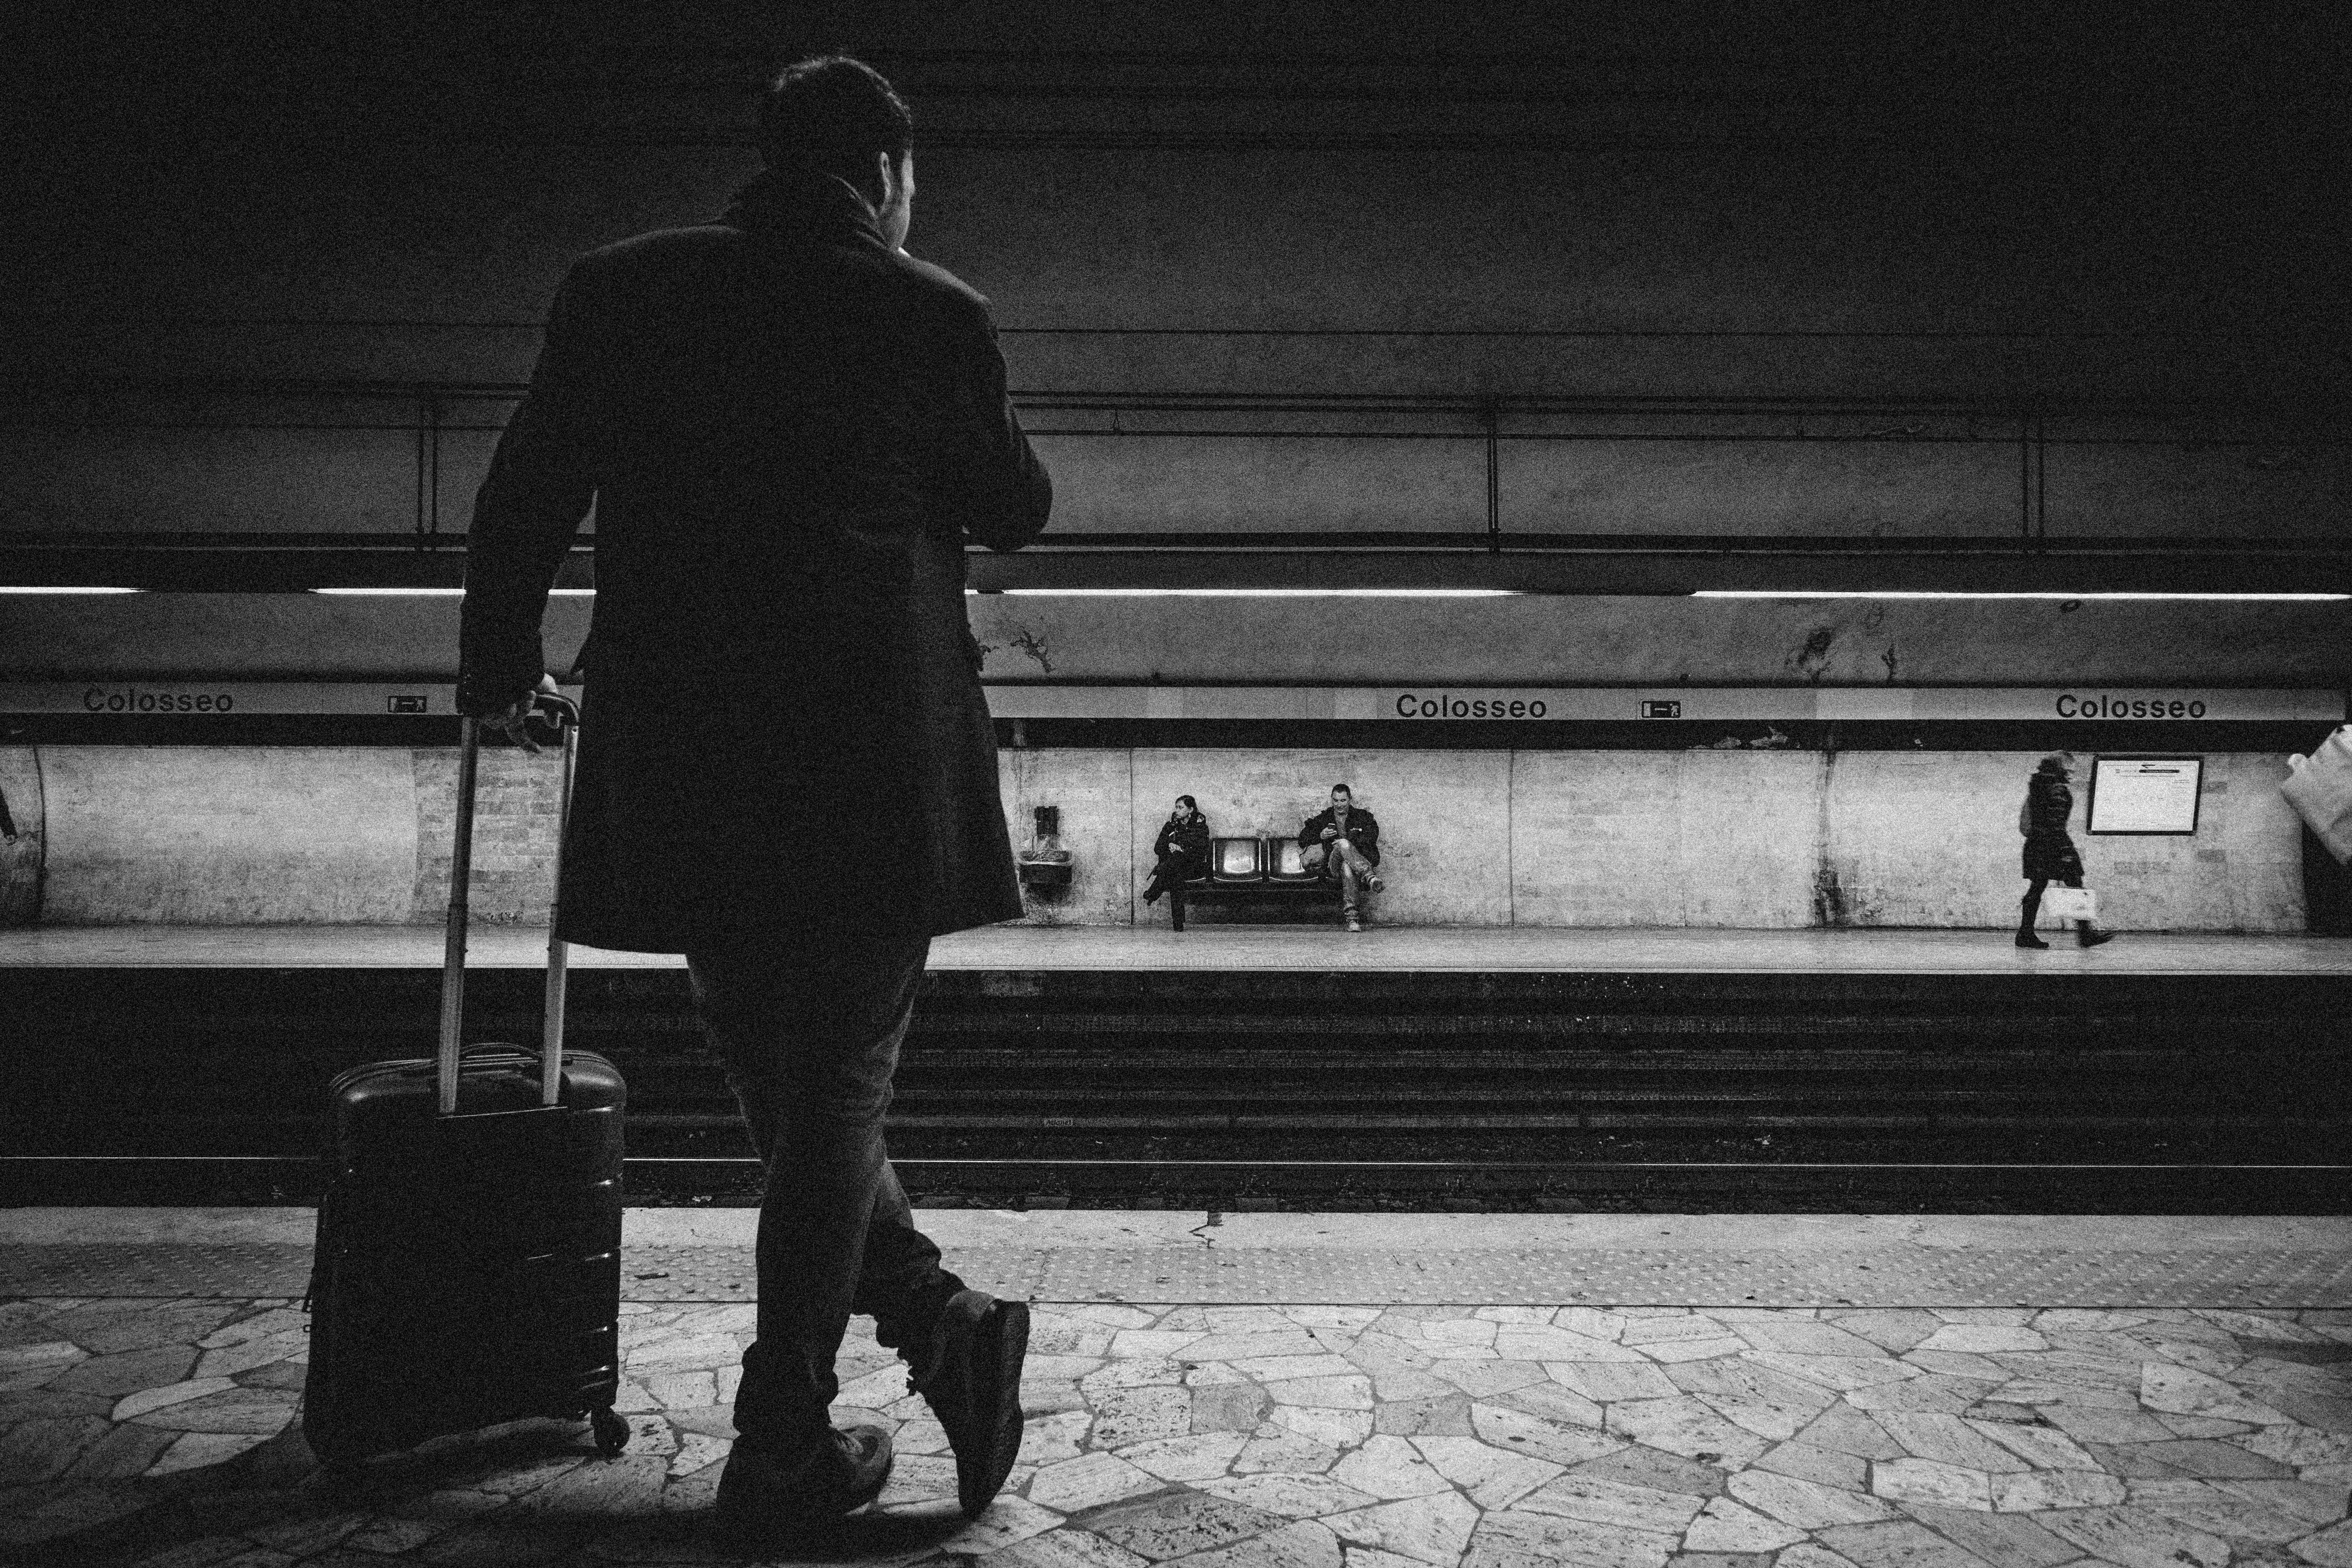 Man With Luggage Bag on Train Station